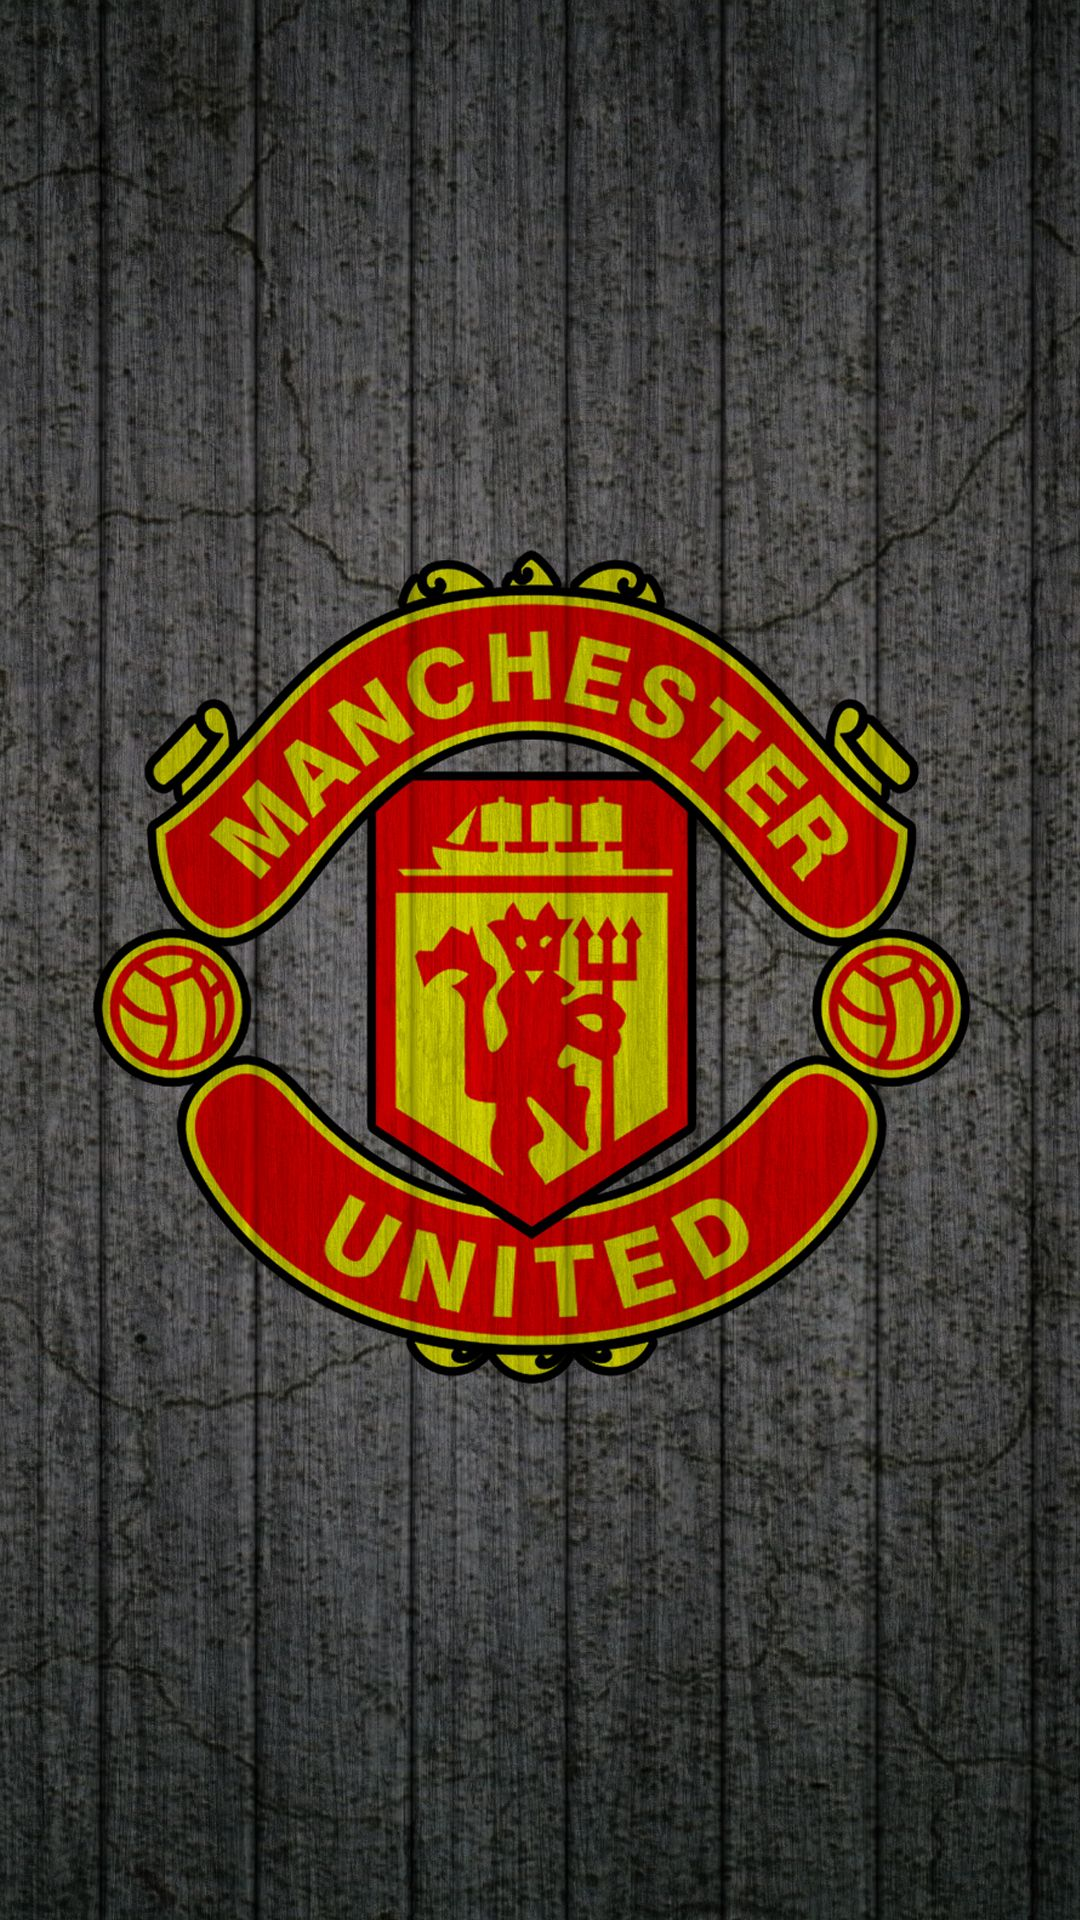 apple iphone 6 plus hd wallpaper manchester united logo hd wallpaper download for desktop